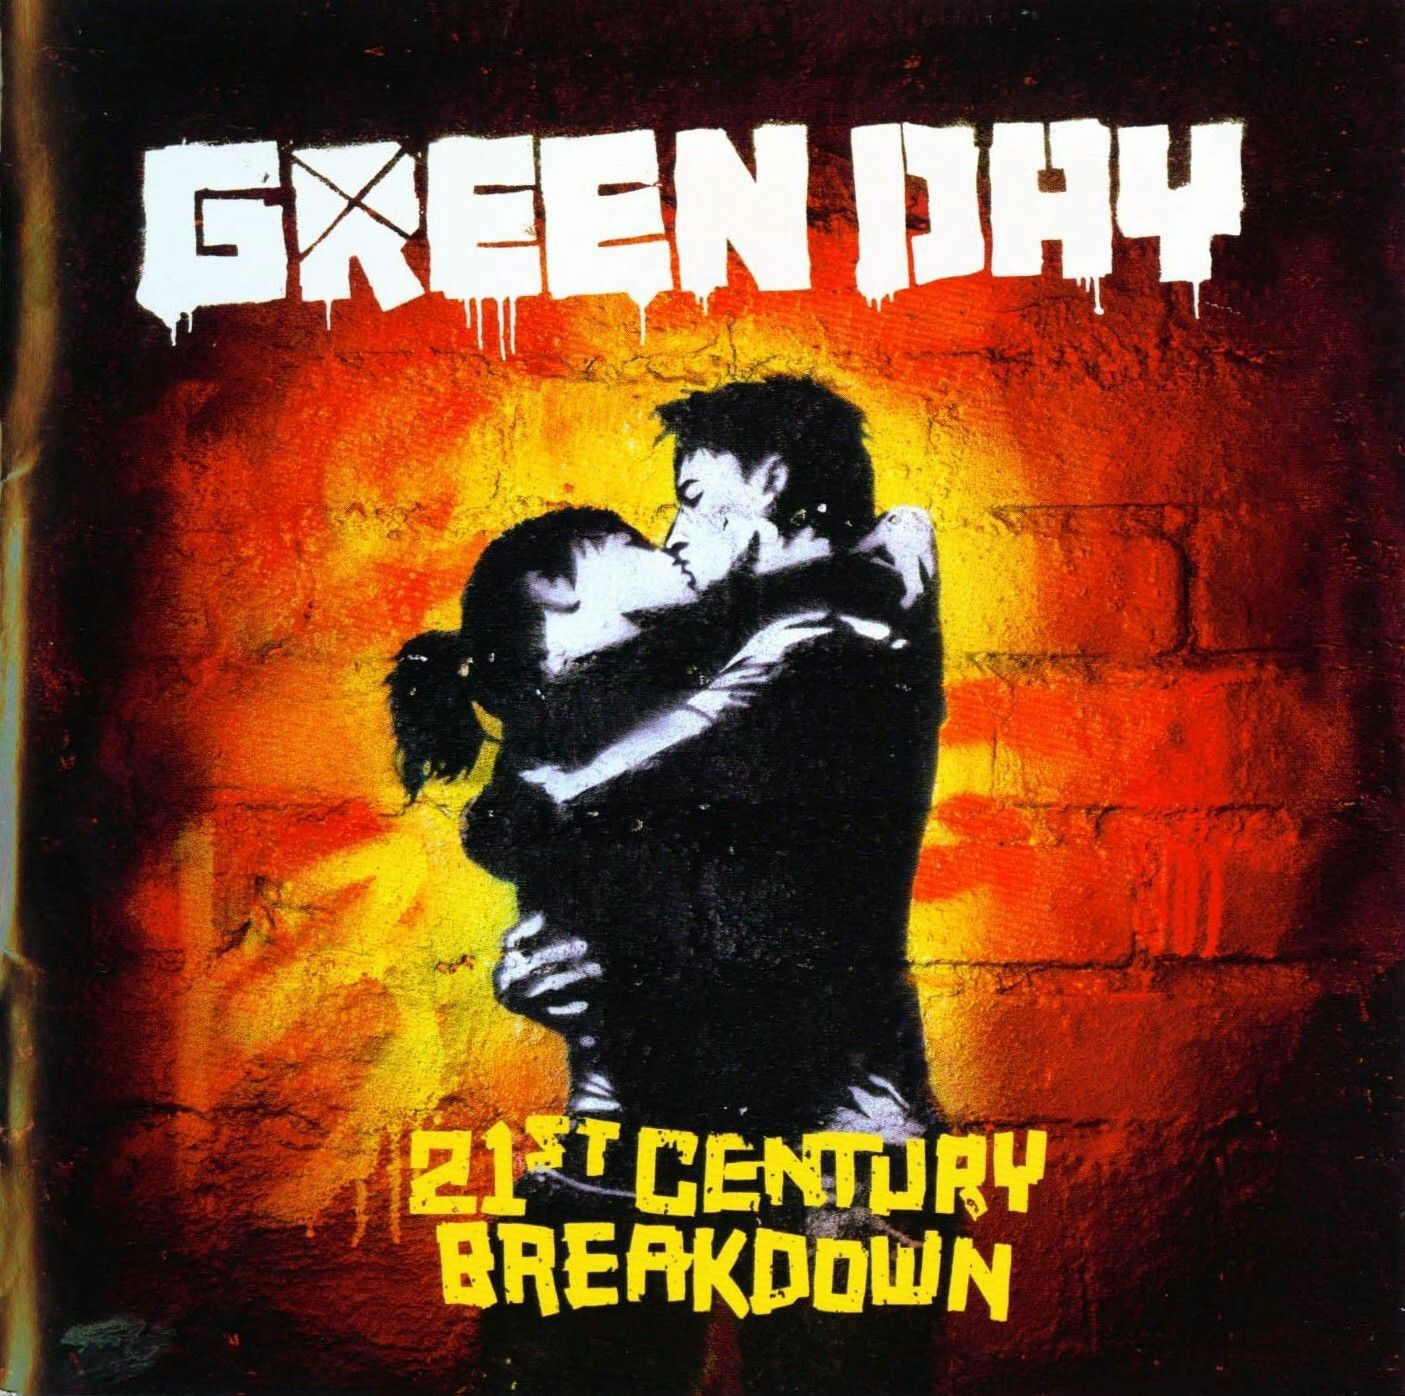 green day jesus of suburbia mp3 song download